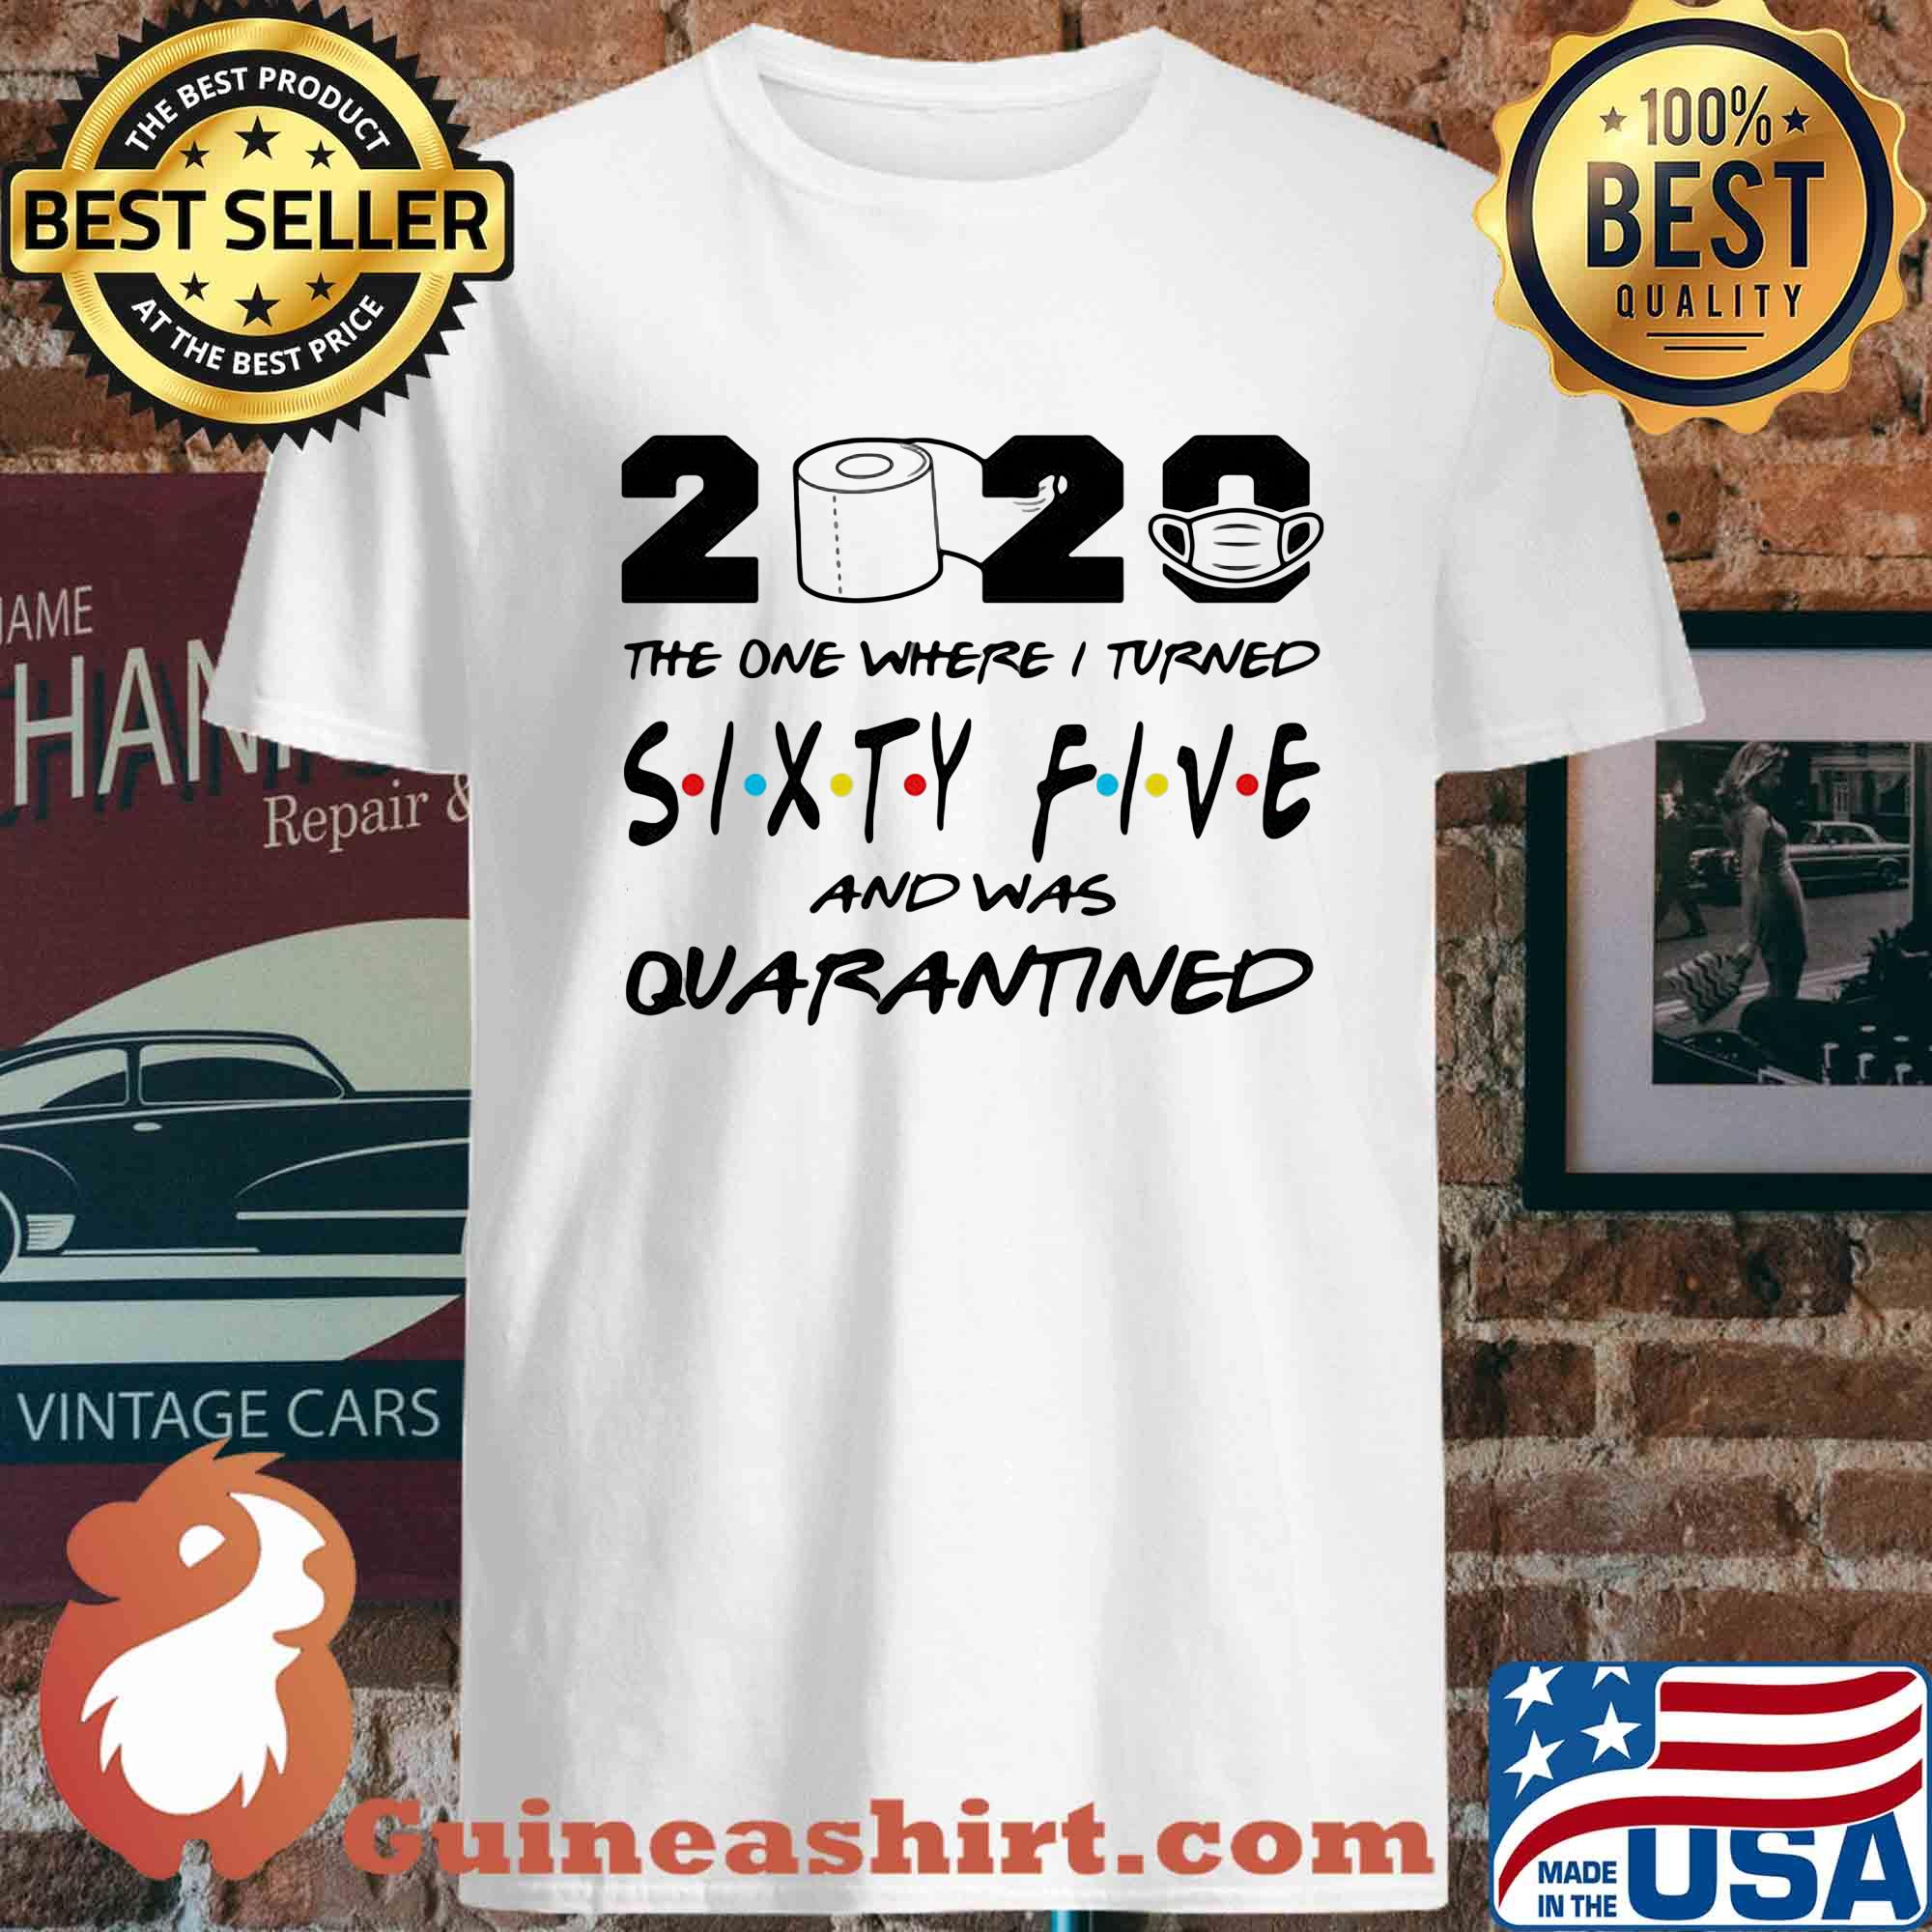 2020 the one where I turned sixty five and was quarantined shirt